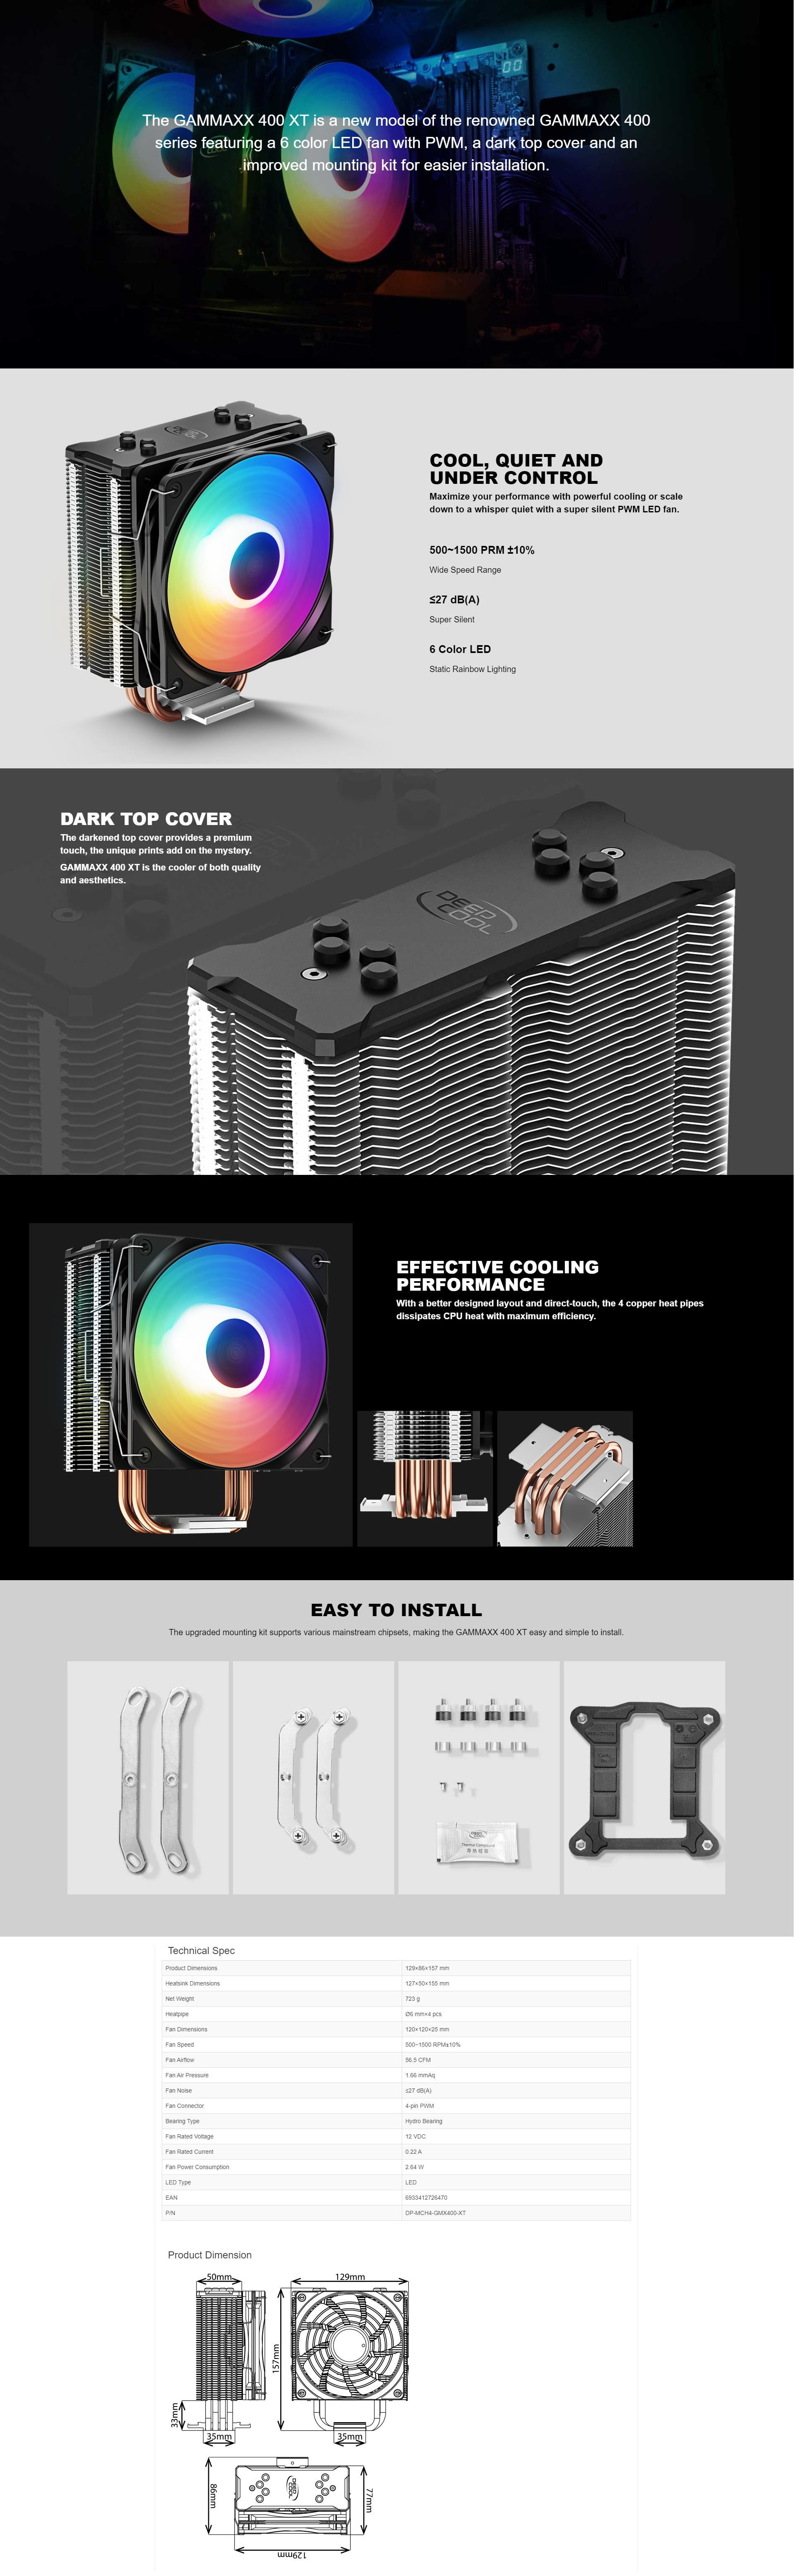 A large marketing image providing additional information about the product Deepcool GAMMAXX 400 XT RGB CPU Air Cooler - Additional alt info not provided